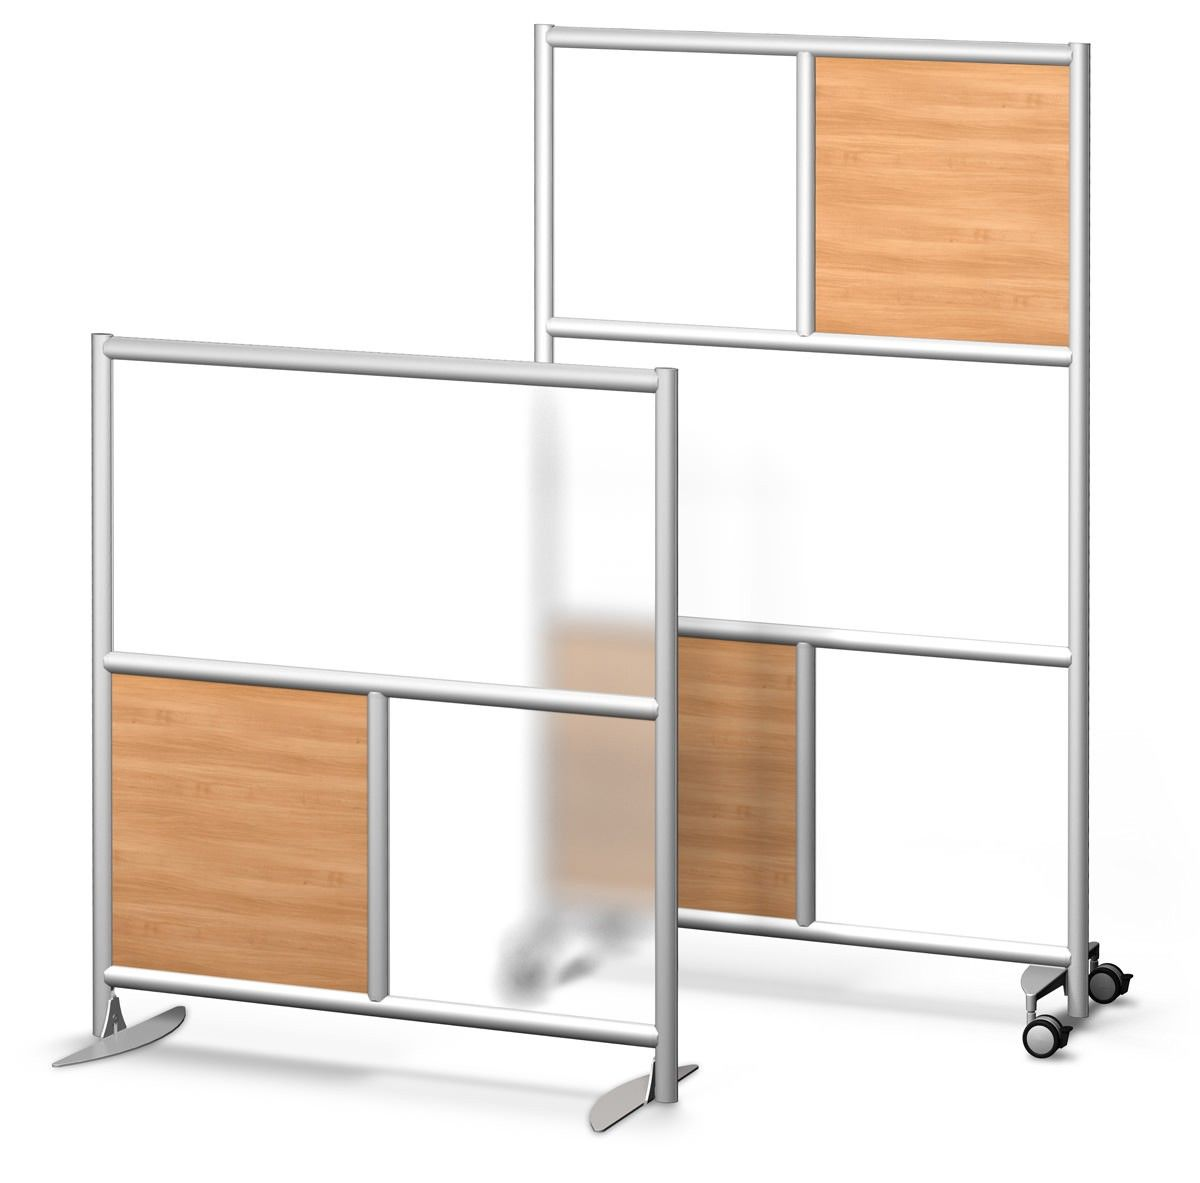 Free standing wall divider - Urban Wall Room Divider Walls Free Standing And 4 Wheel 49 X54